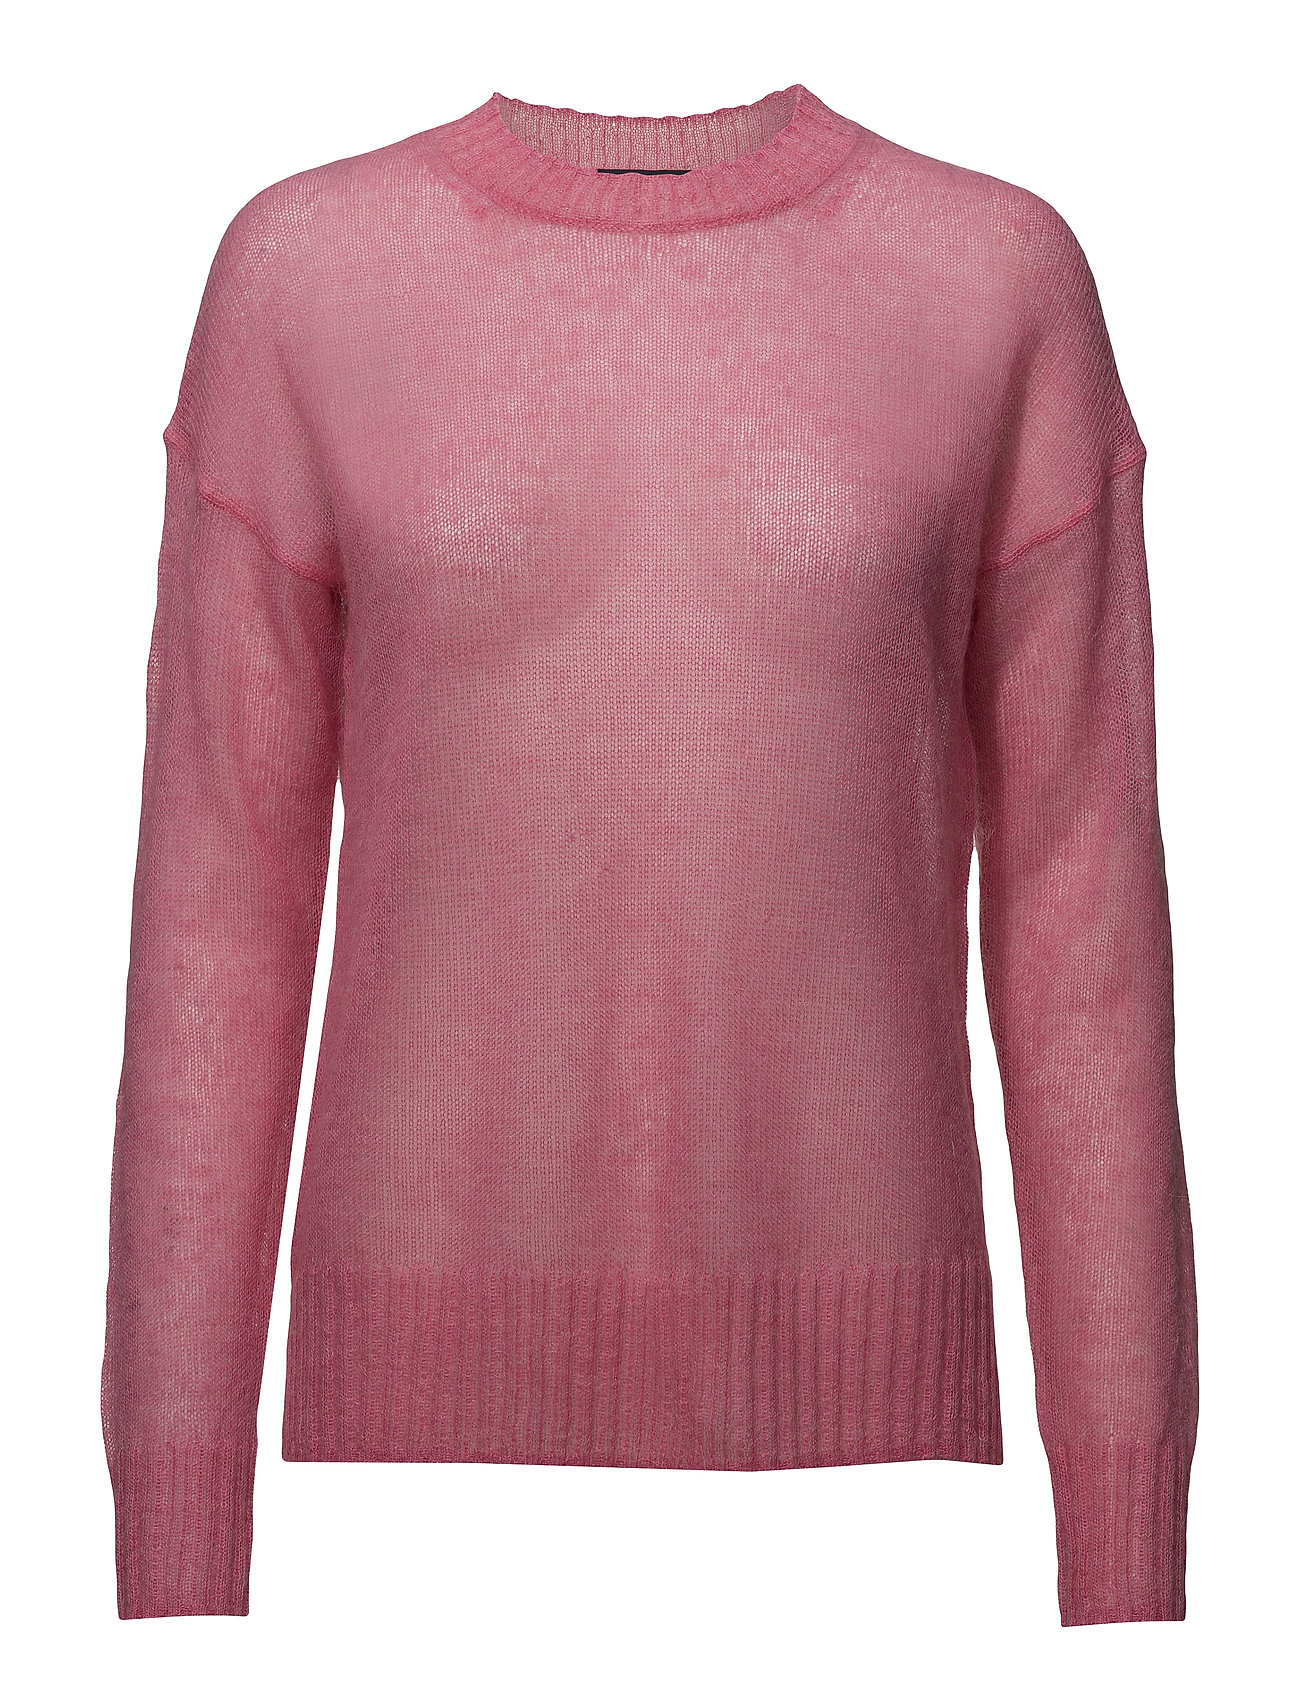 French Connection MIRI KNITS DROP SHLDR JUMPER - ELECTRIC PINK